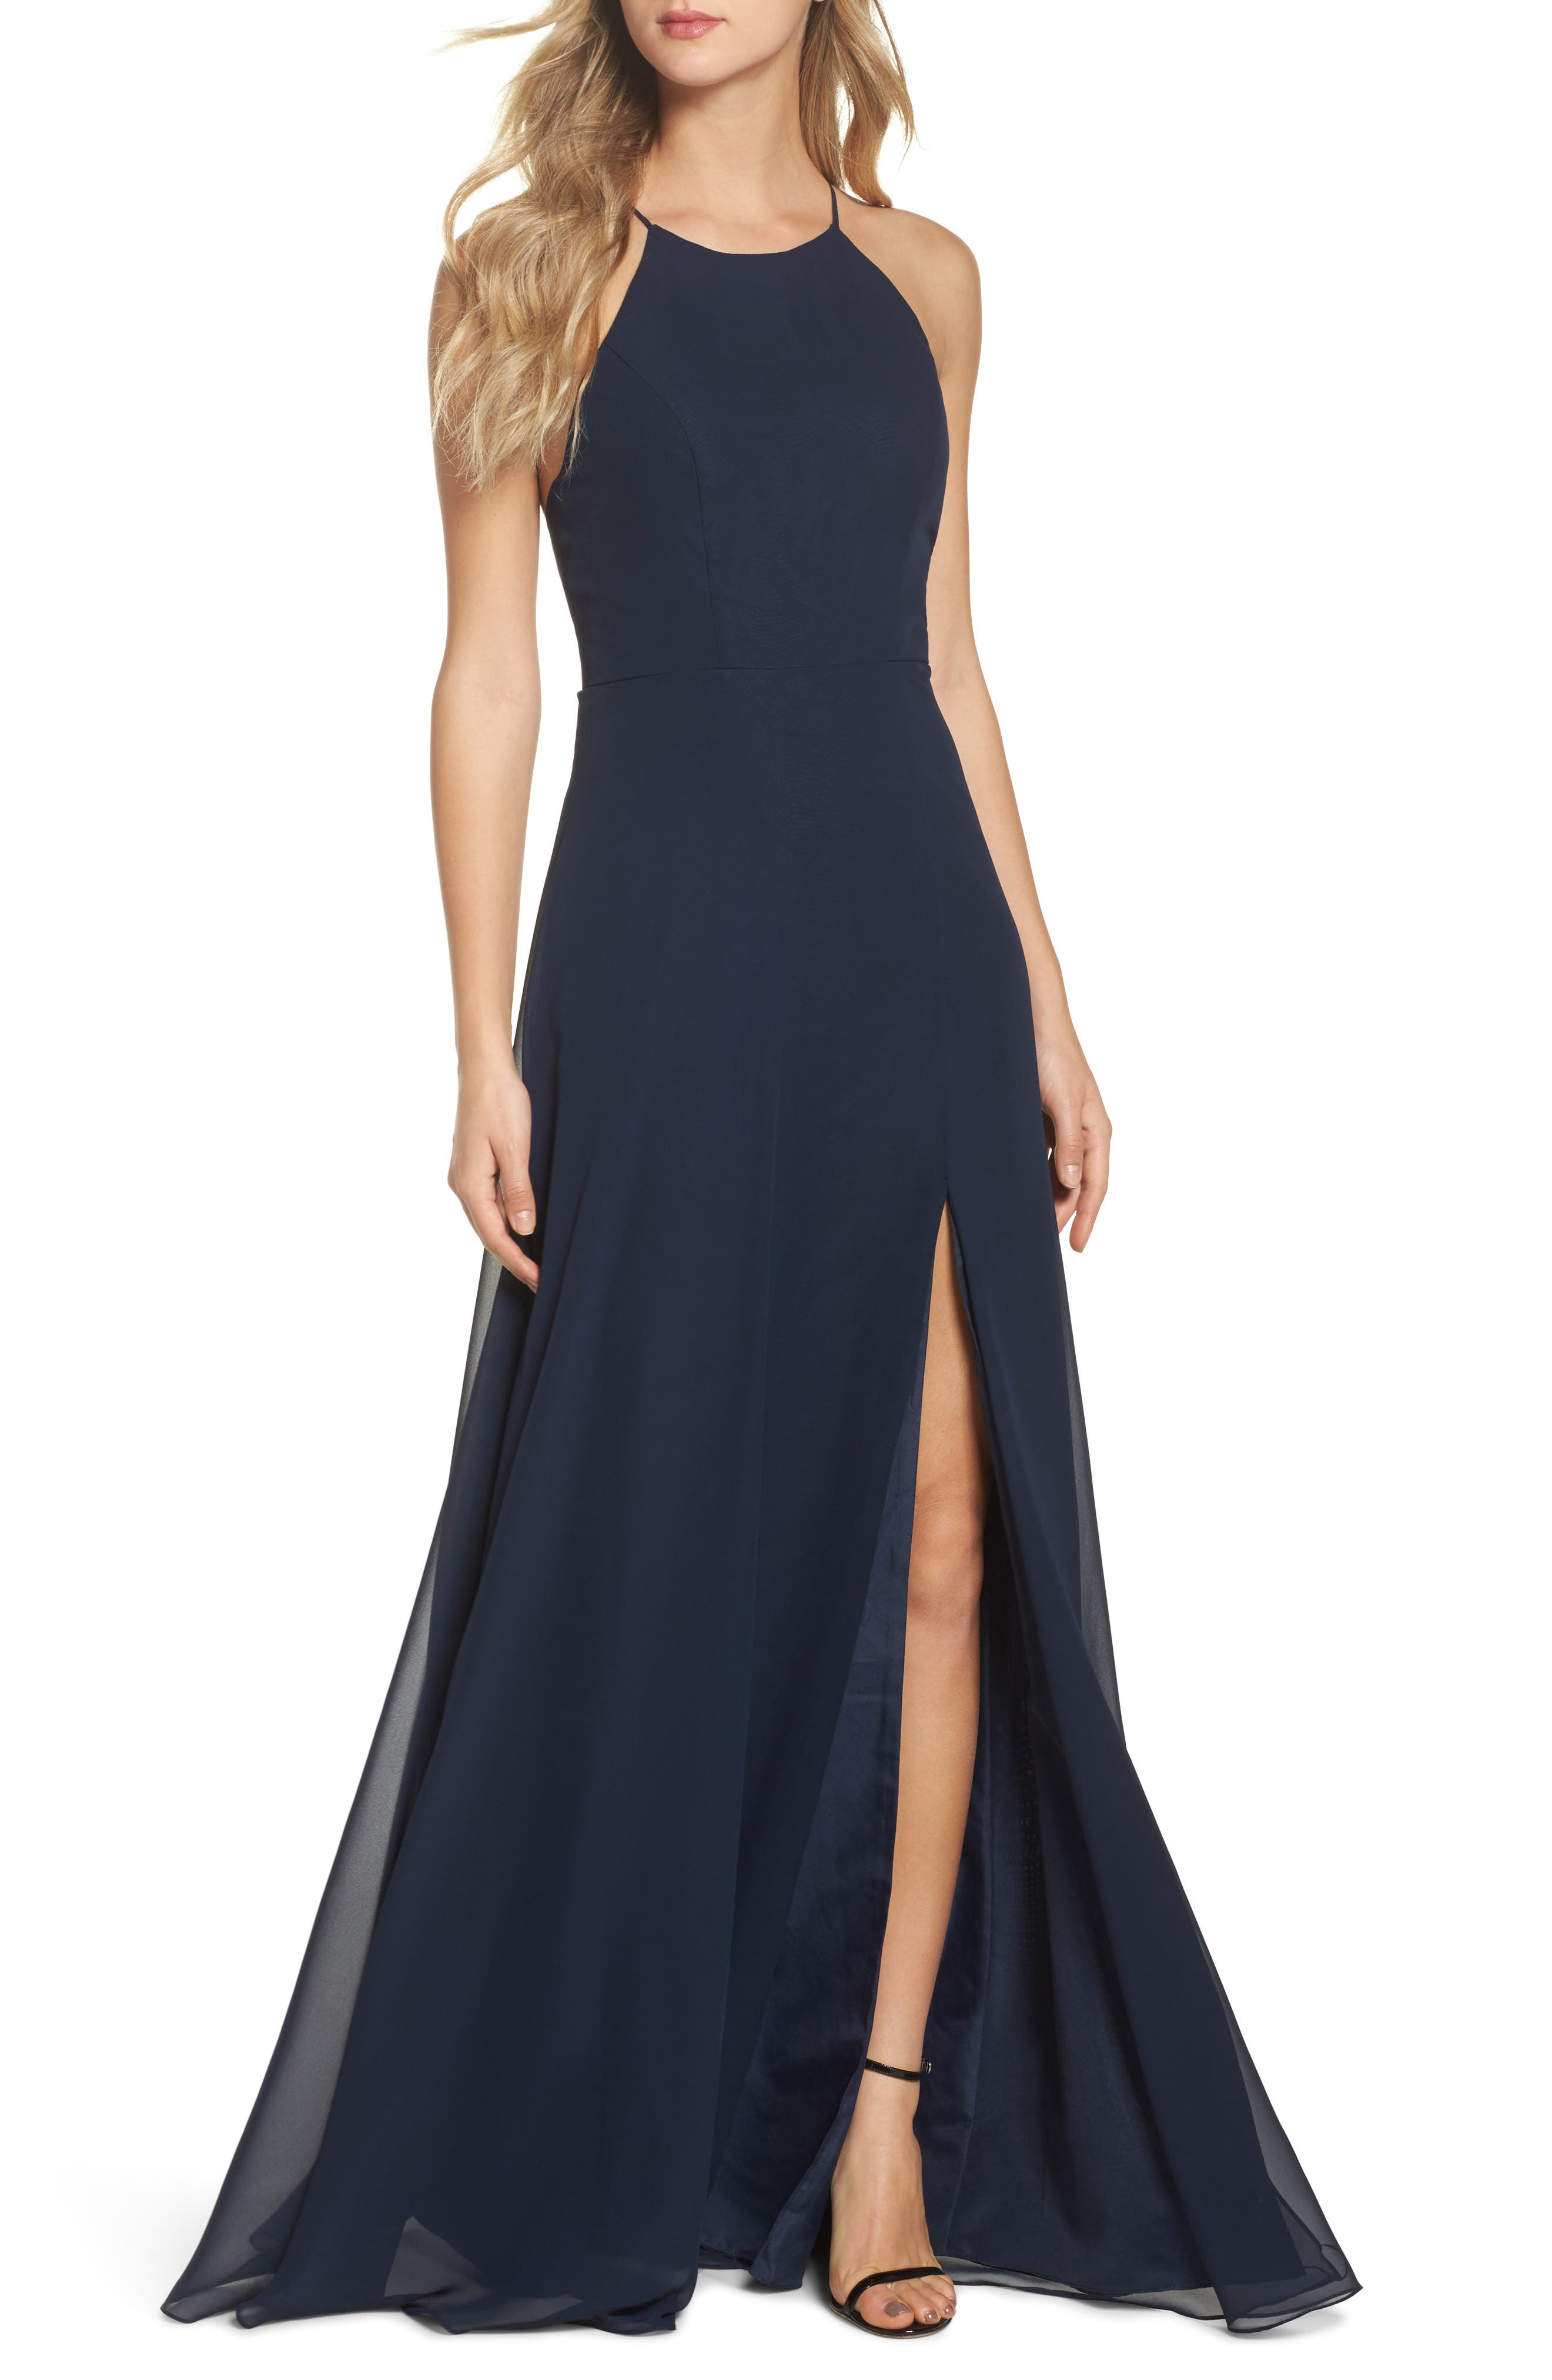 Kayla A-Line Halter Gown in Navy